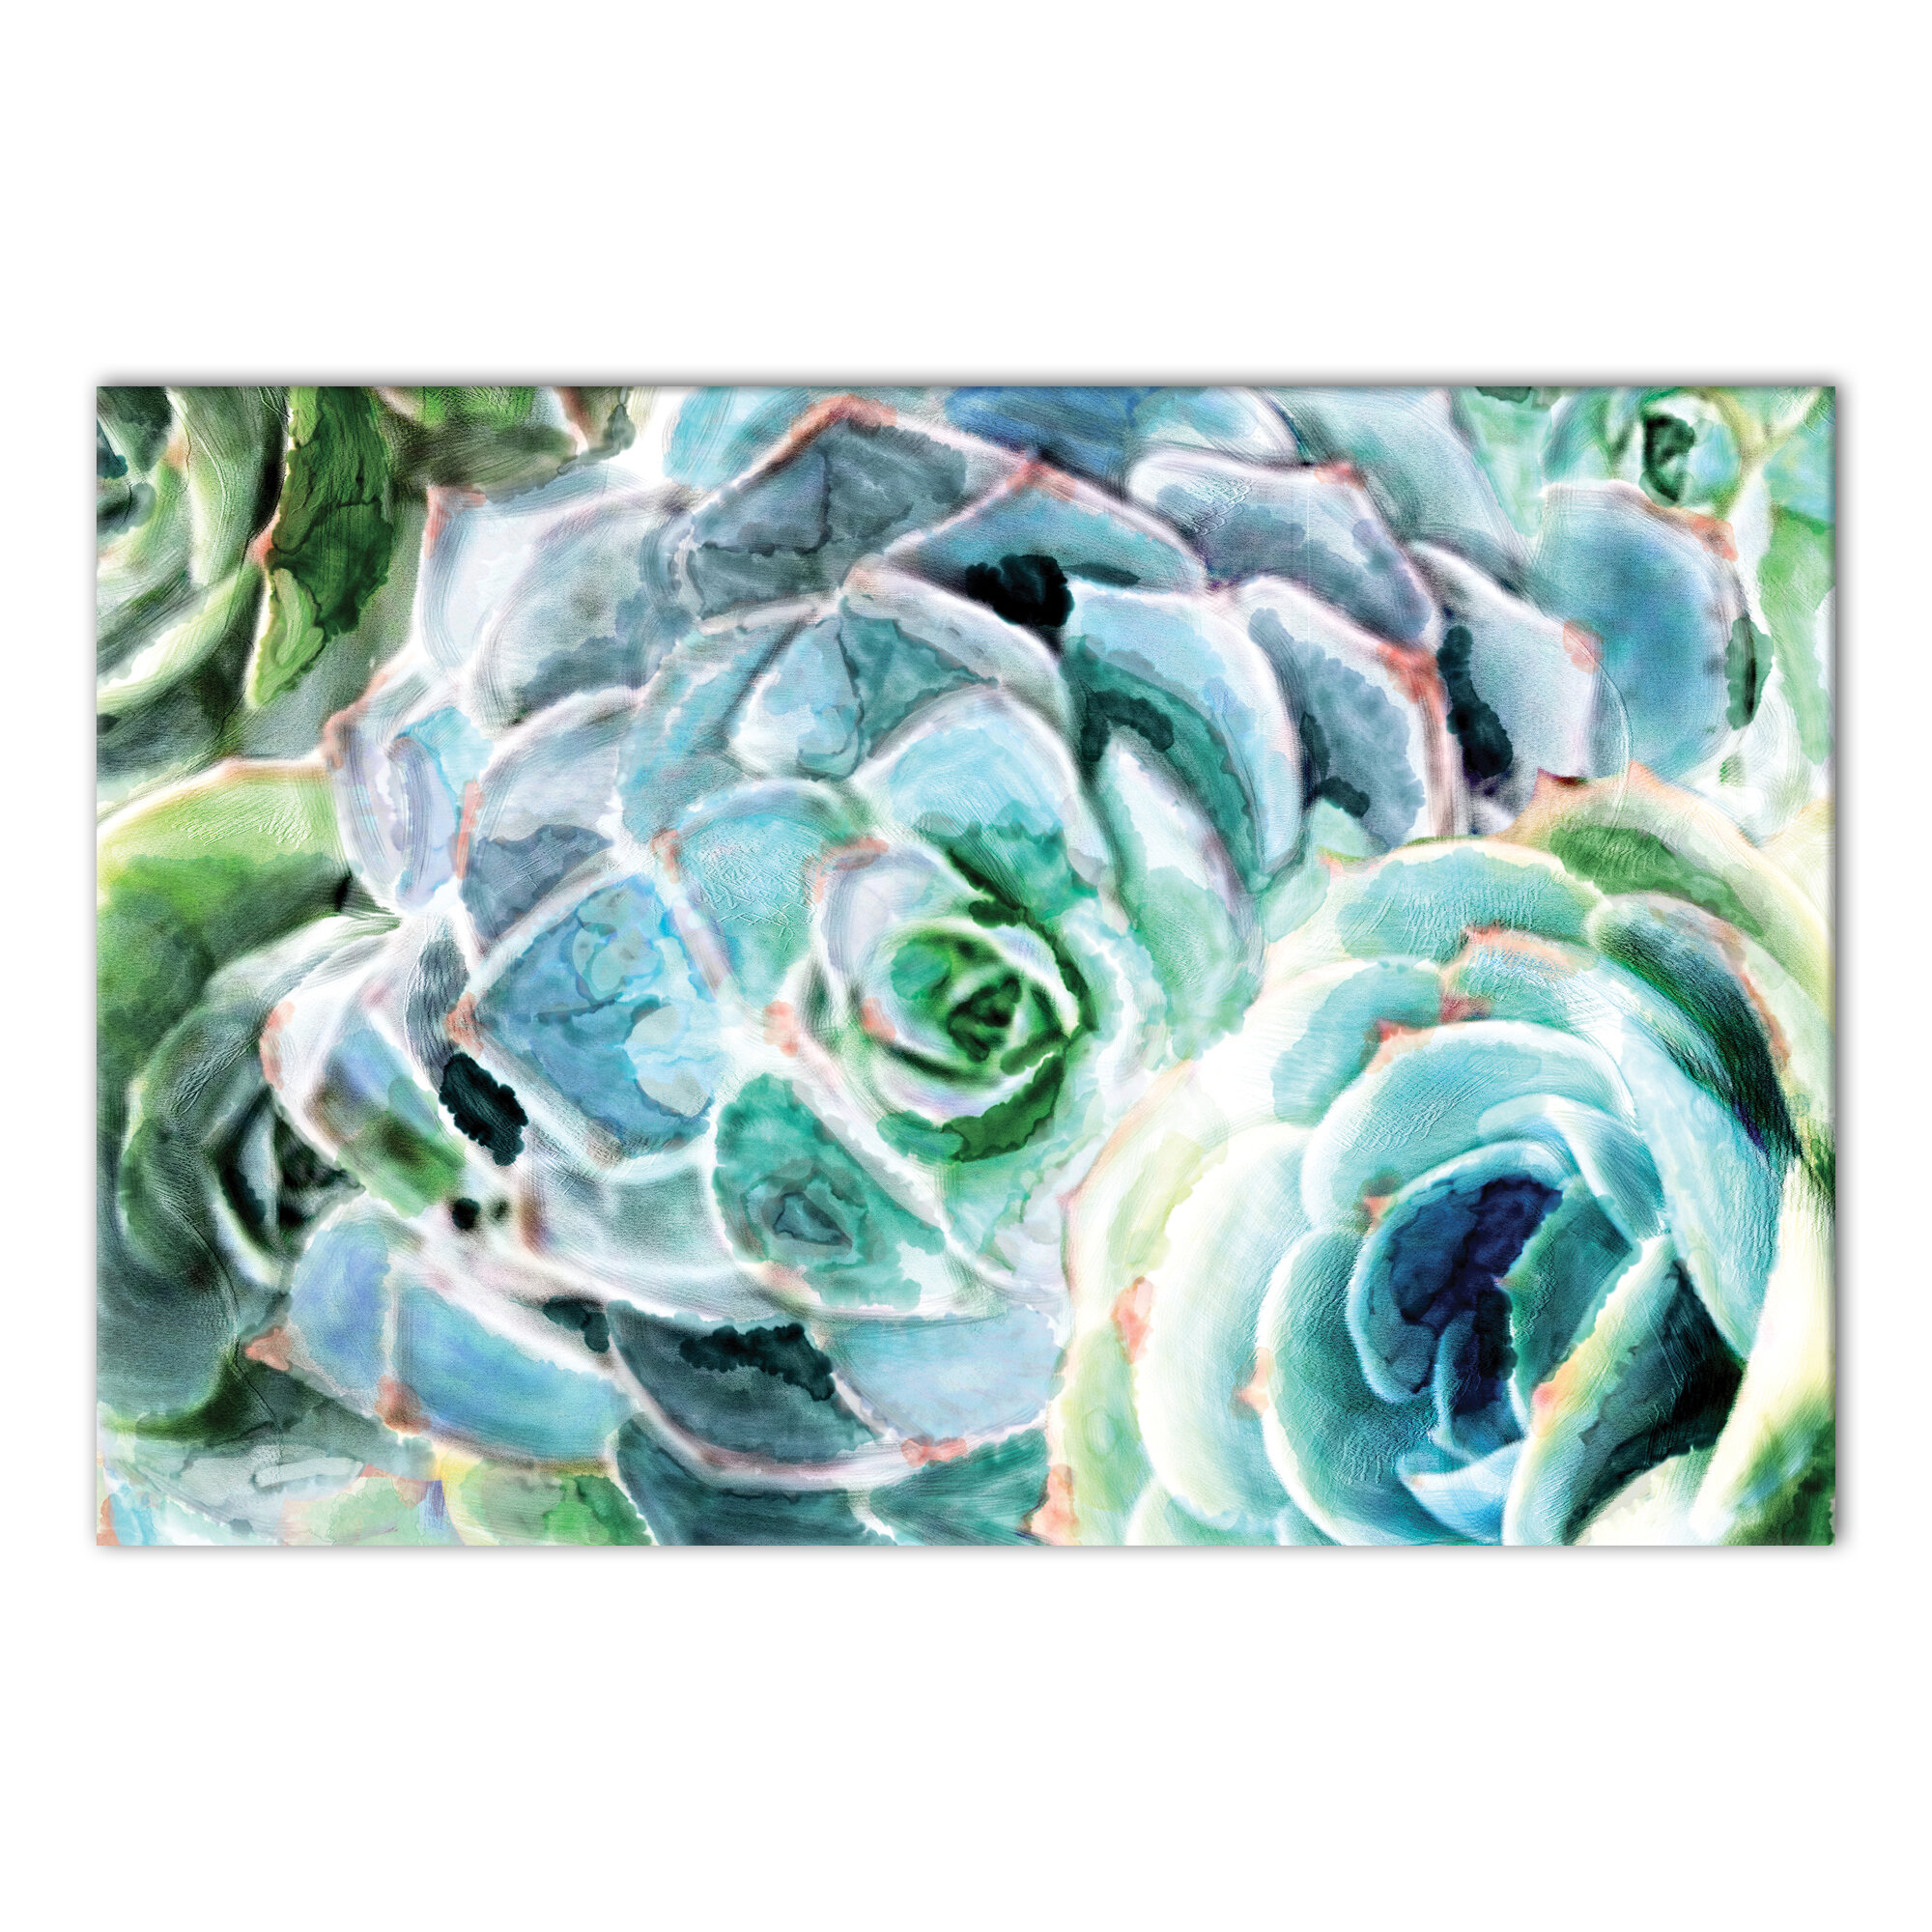 Gallery Wrapped Canvas Succulents Wall Art You Ll Love In 2021 Wayfair